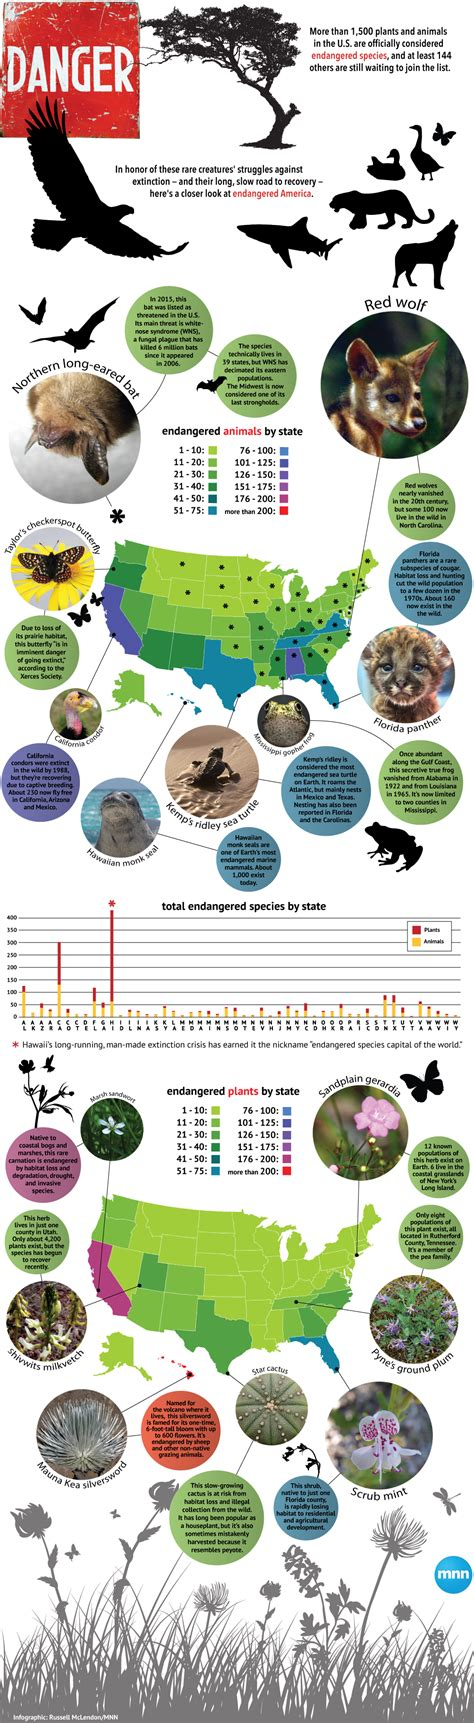 mio for the masses mnn mother nature network which u s states have the most endangered species